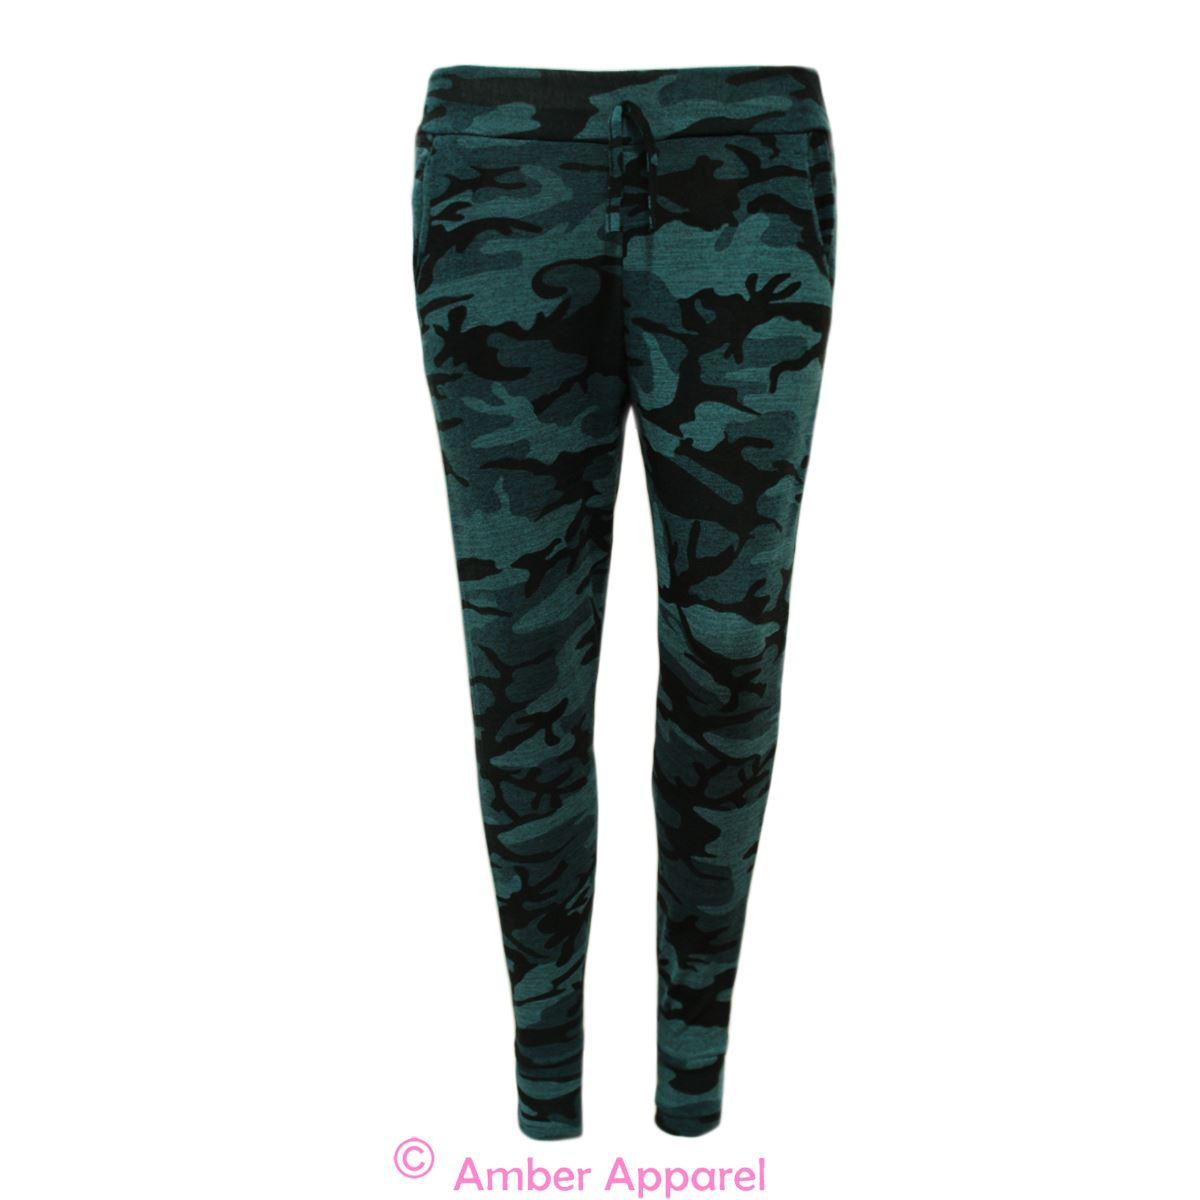 Model New Womens Camouflage Joggers Army Khaki Pants With Pockets Size S M L XL | EBay